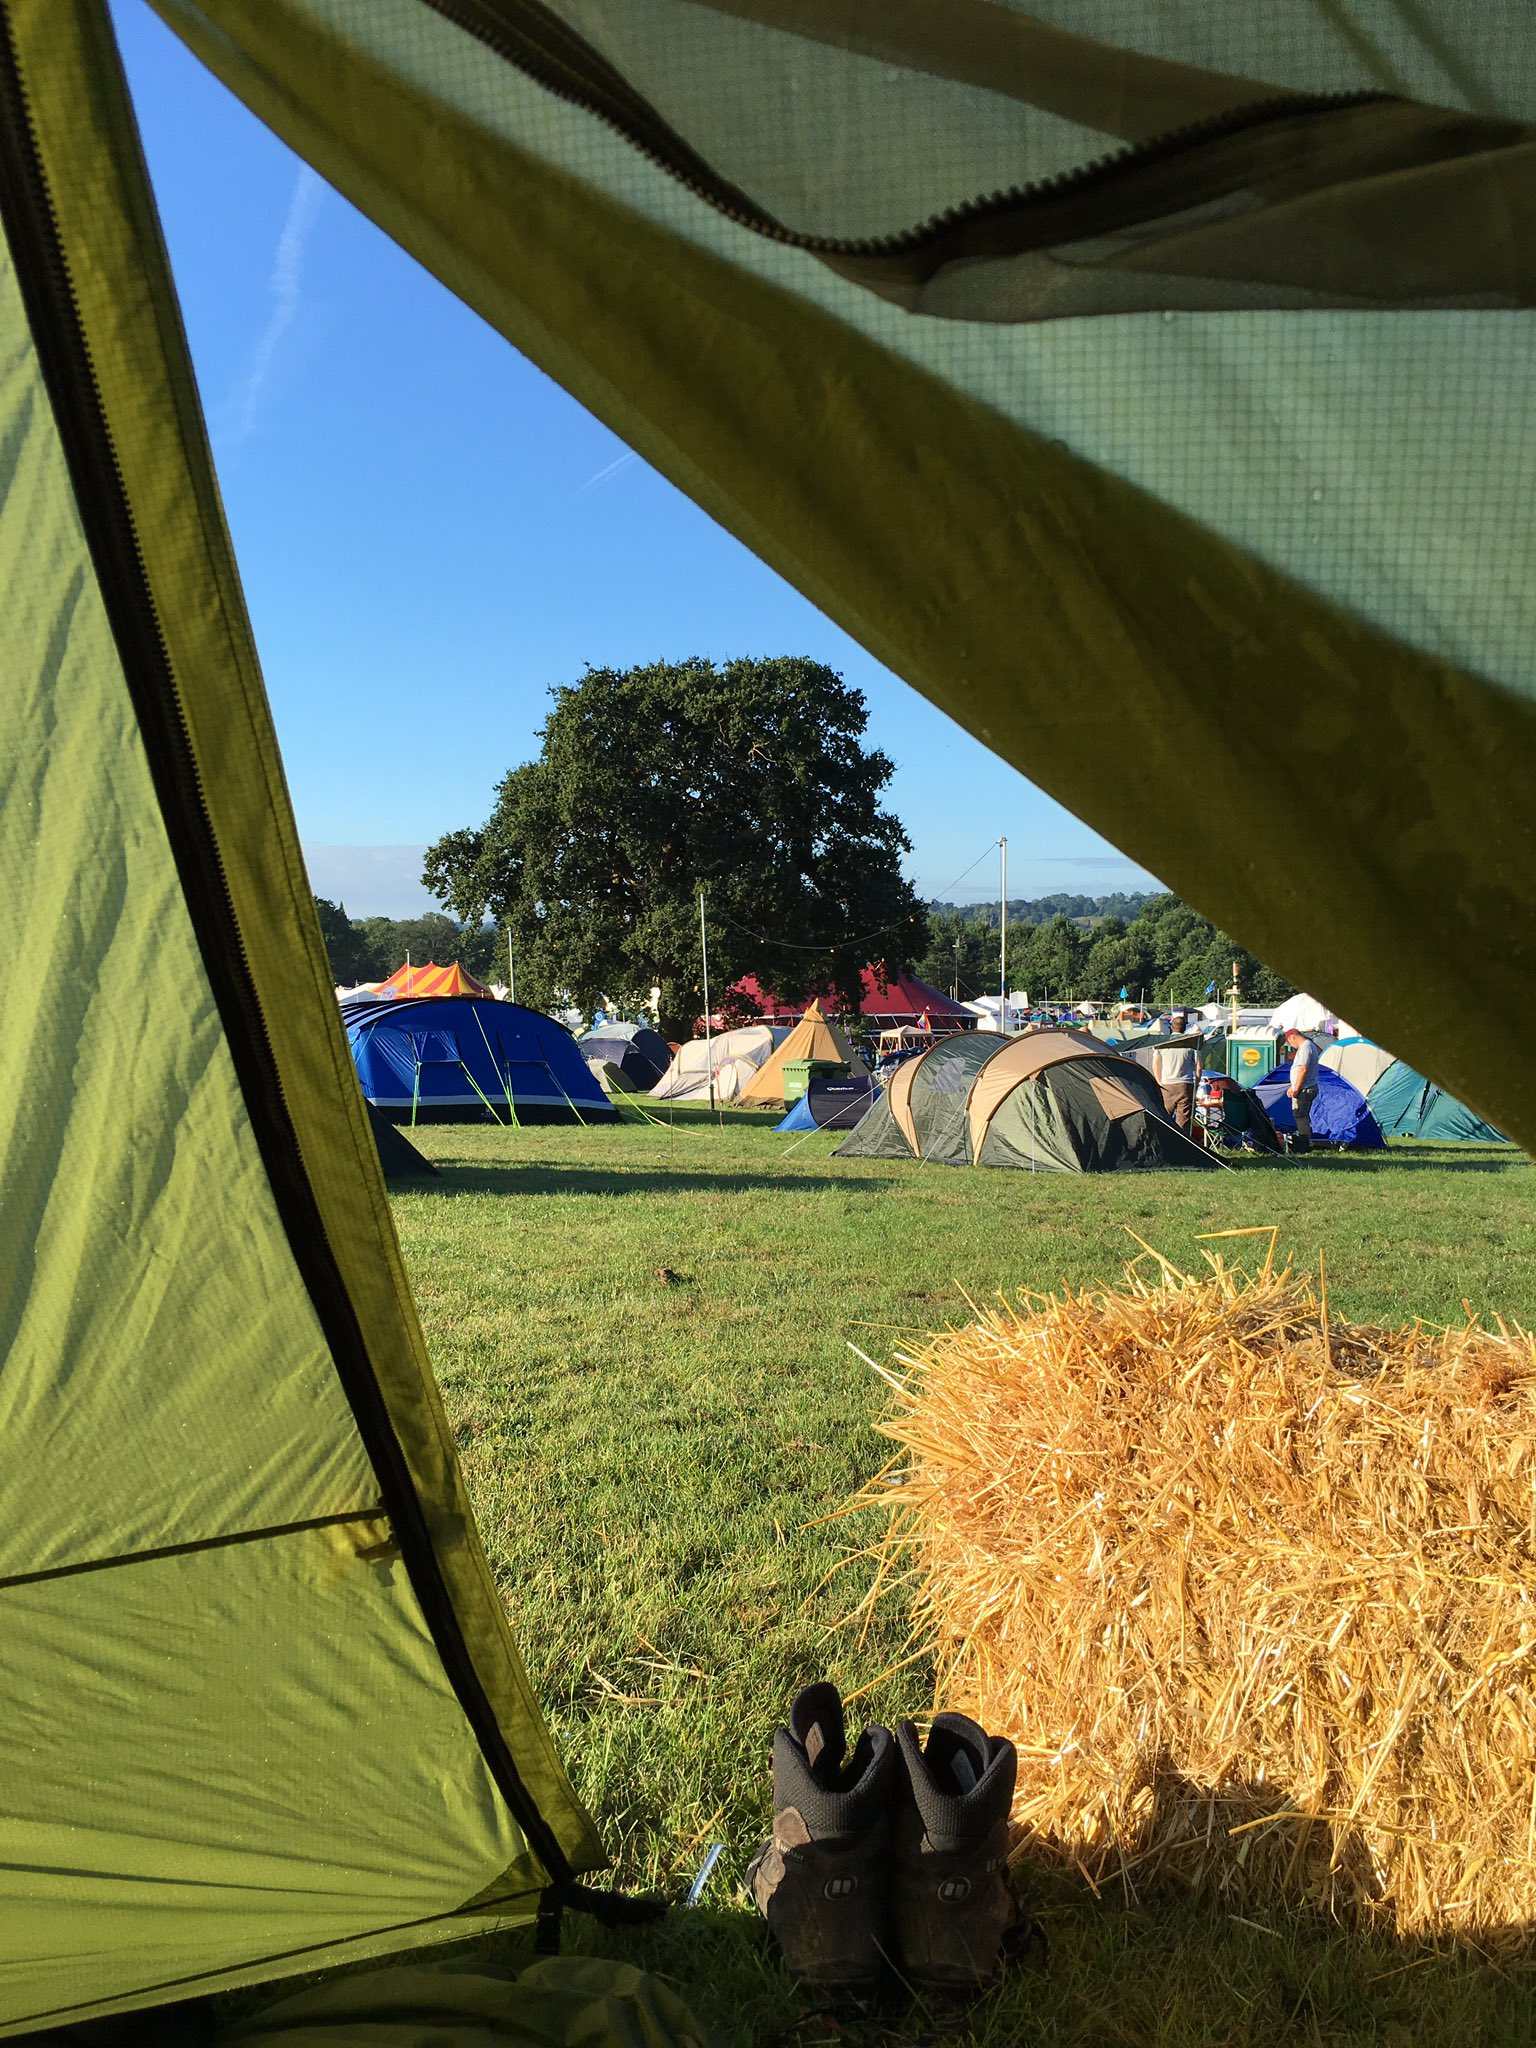 Good morning #emfcamp https://t.co/Tu84jQj8f8